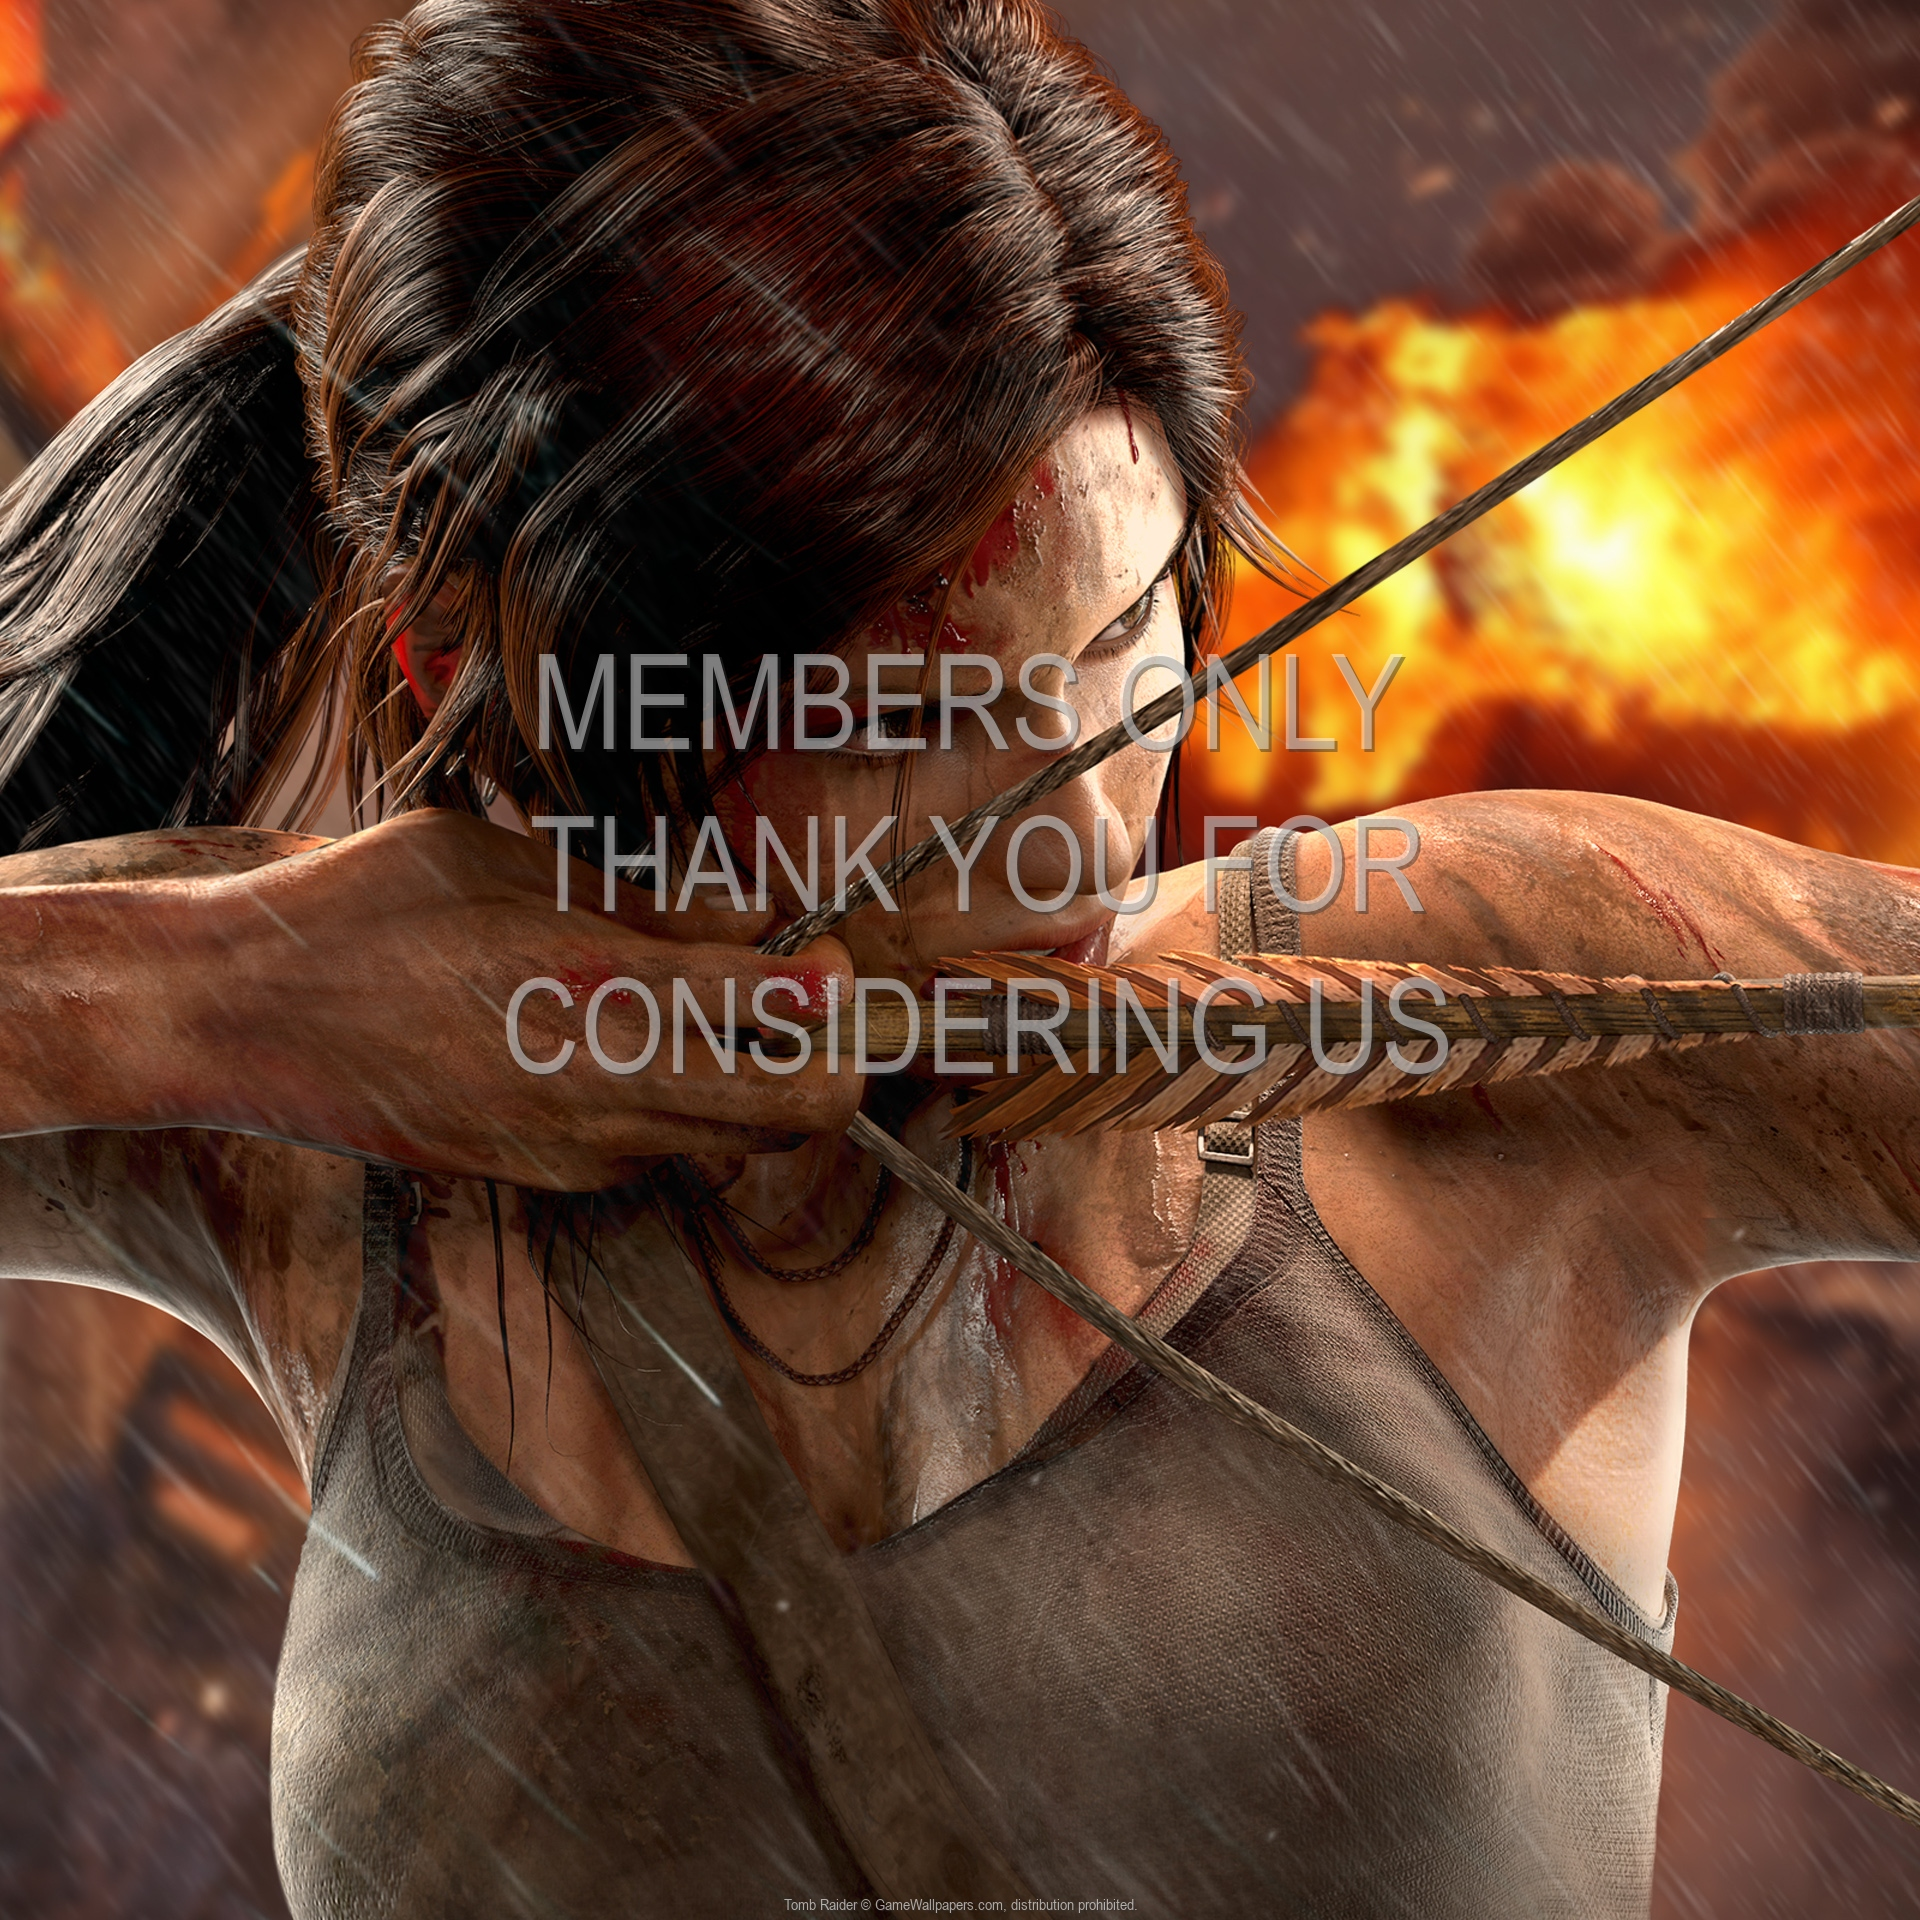 Tomb Raider 1920x1080 Mobile wallpaper or background 12